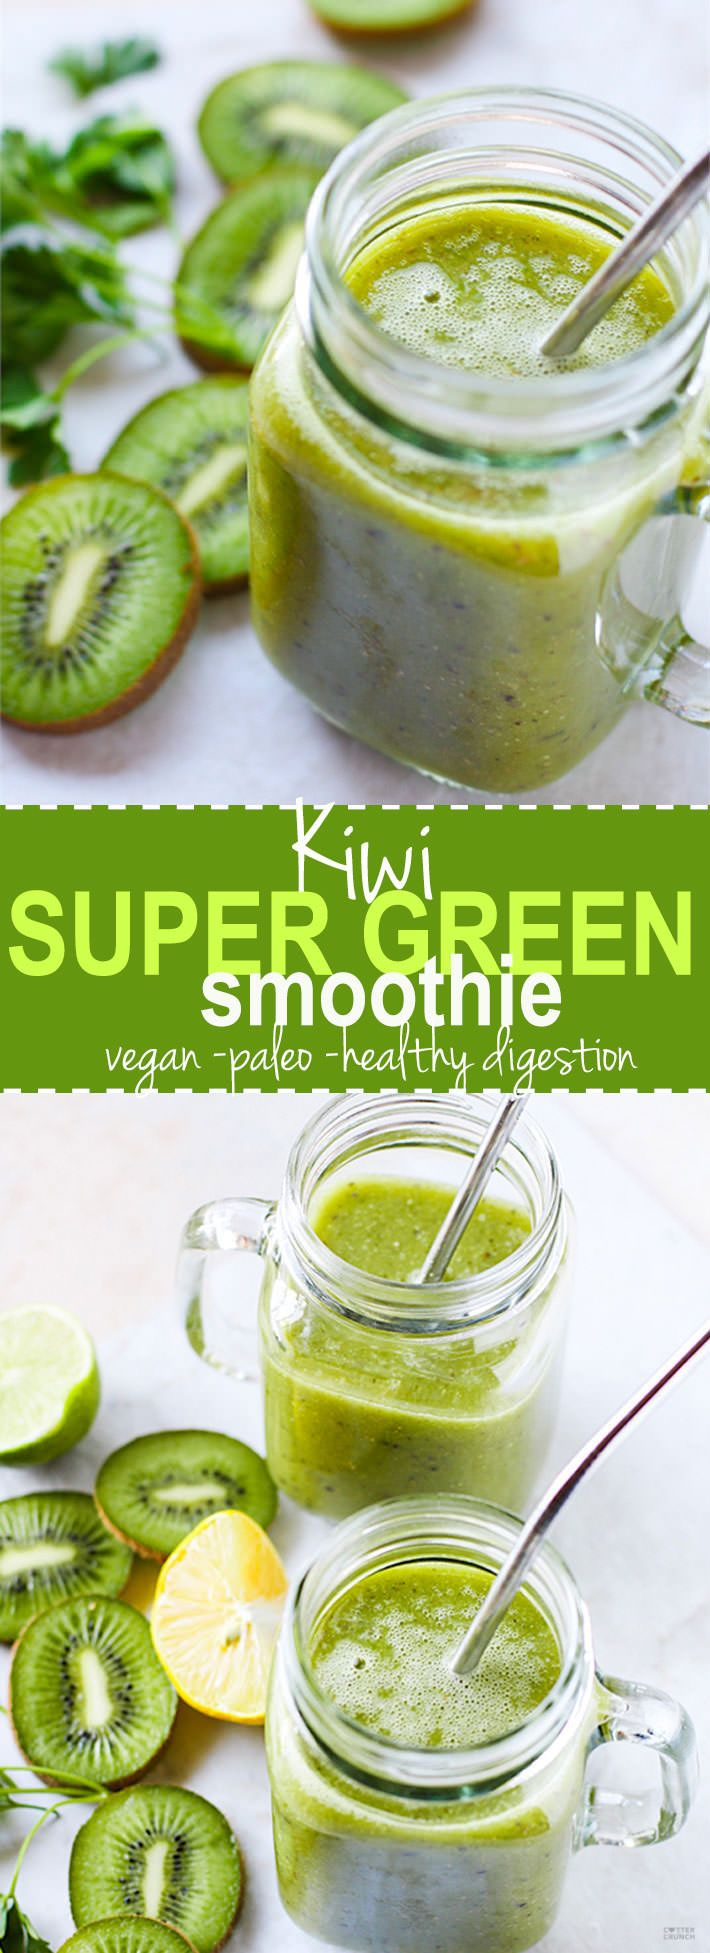 Paleo-kiwi-super-green-smoothie-recipe-for-healthy-digestion